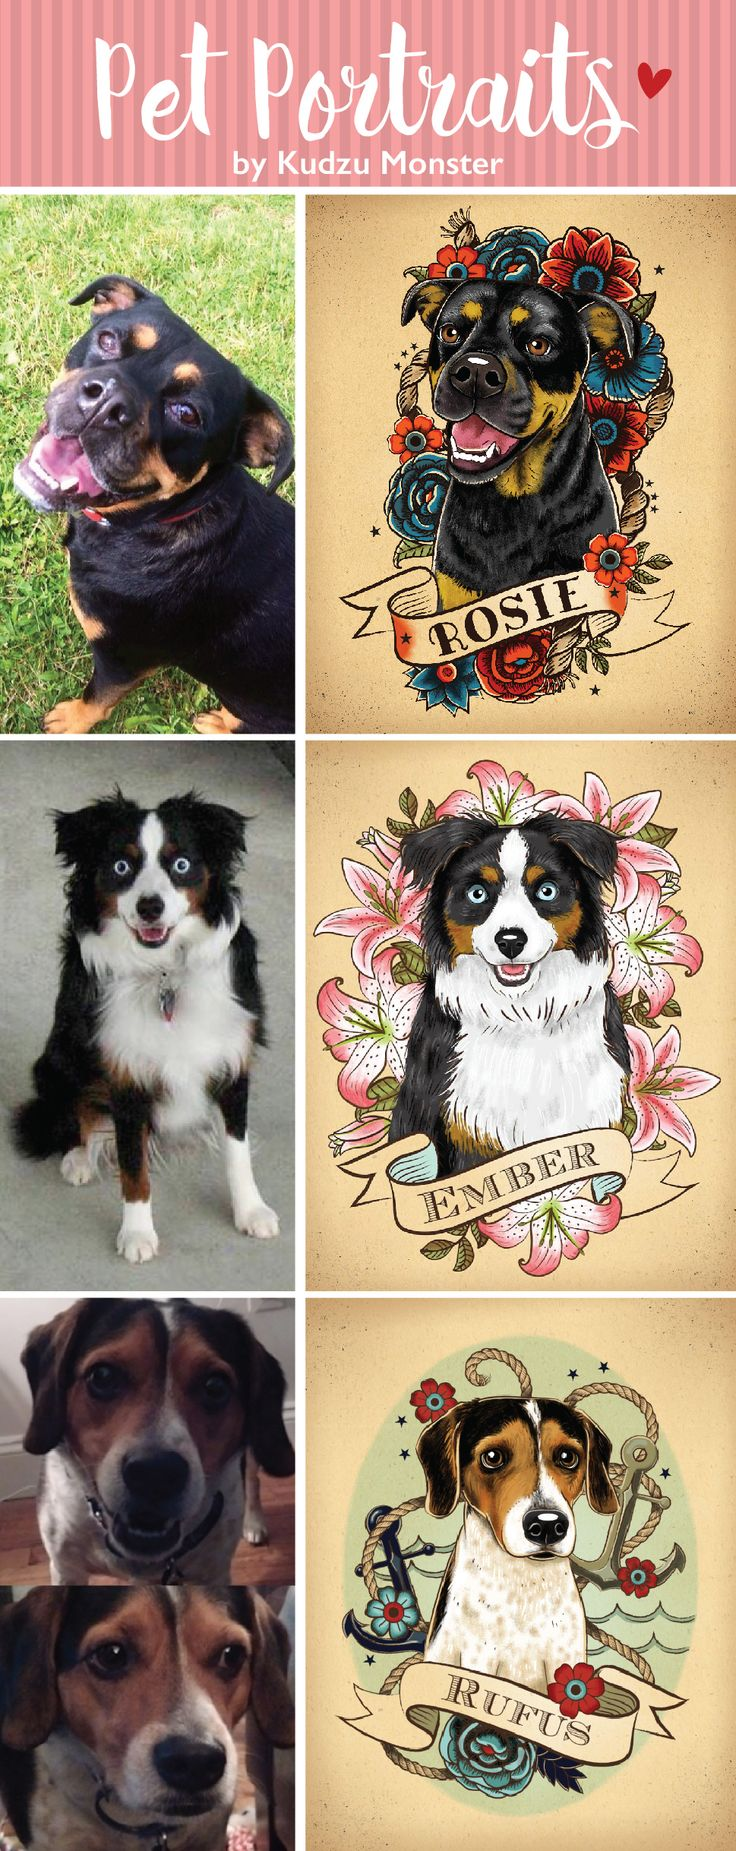 Custom Tattoo style pet portraits by Kudzu Monster.  Dogs, cats, and more.  A great gift for the animal lover in your life.  Original pet art